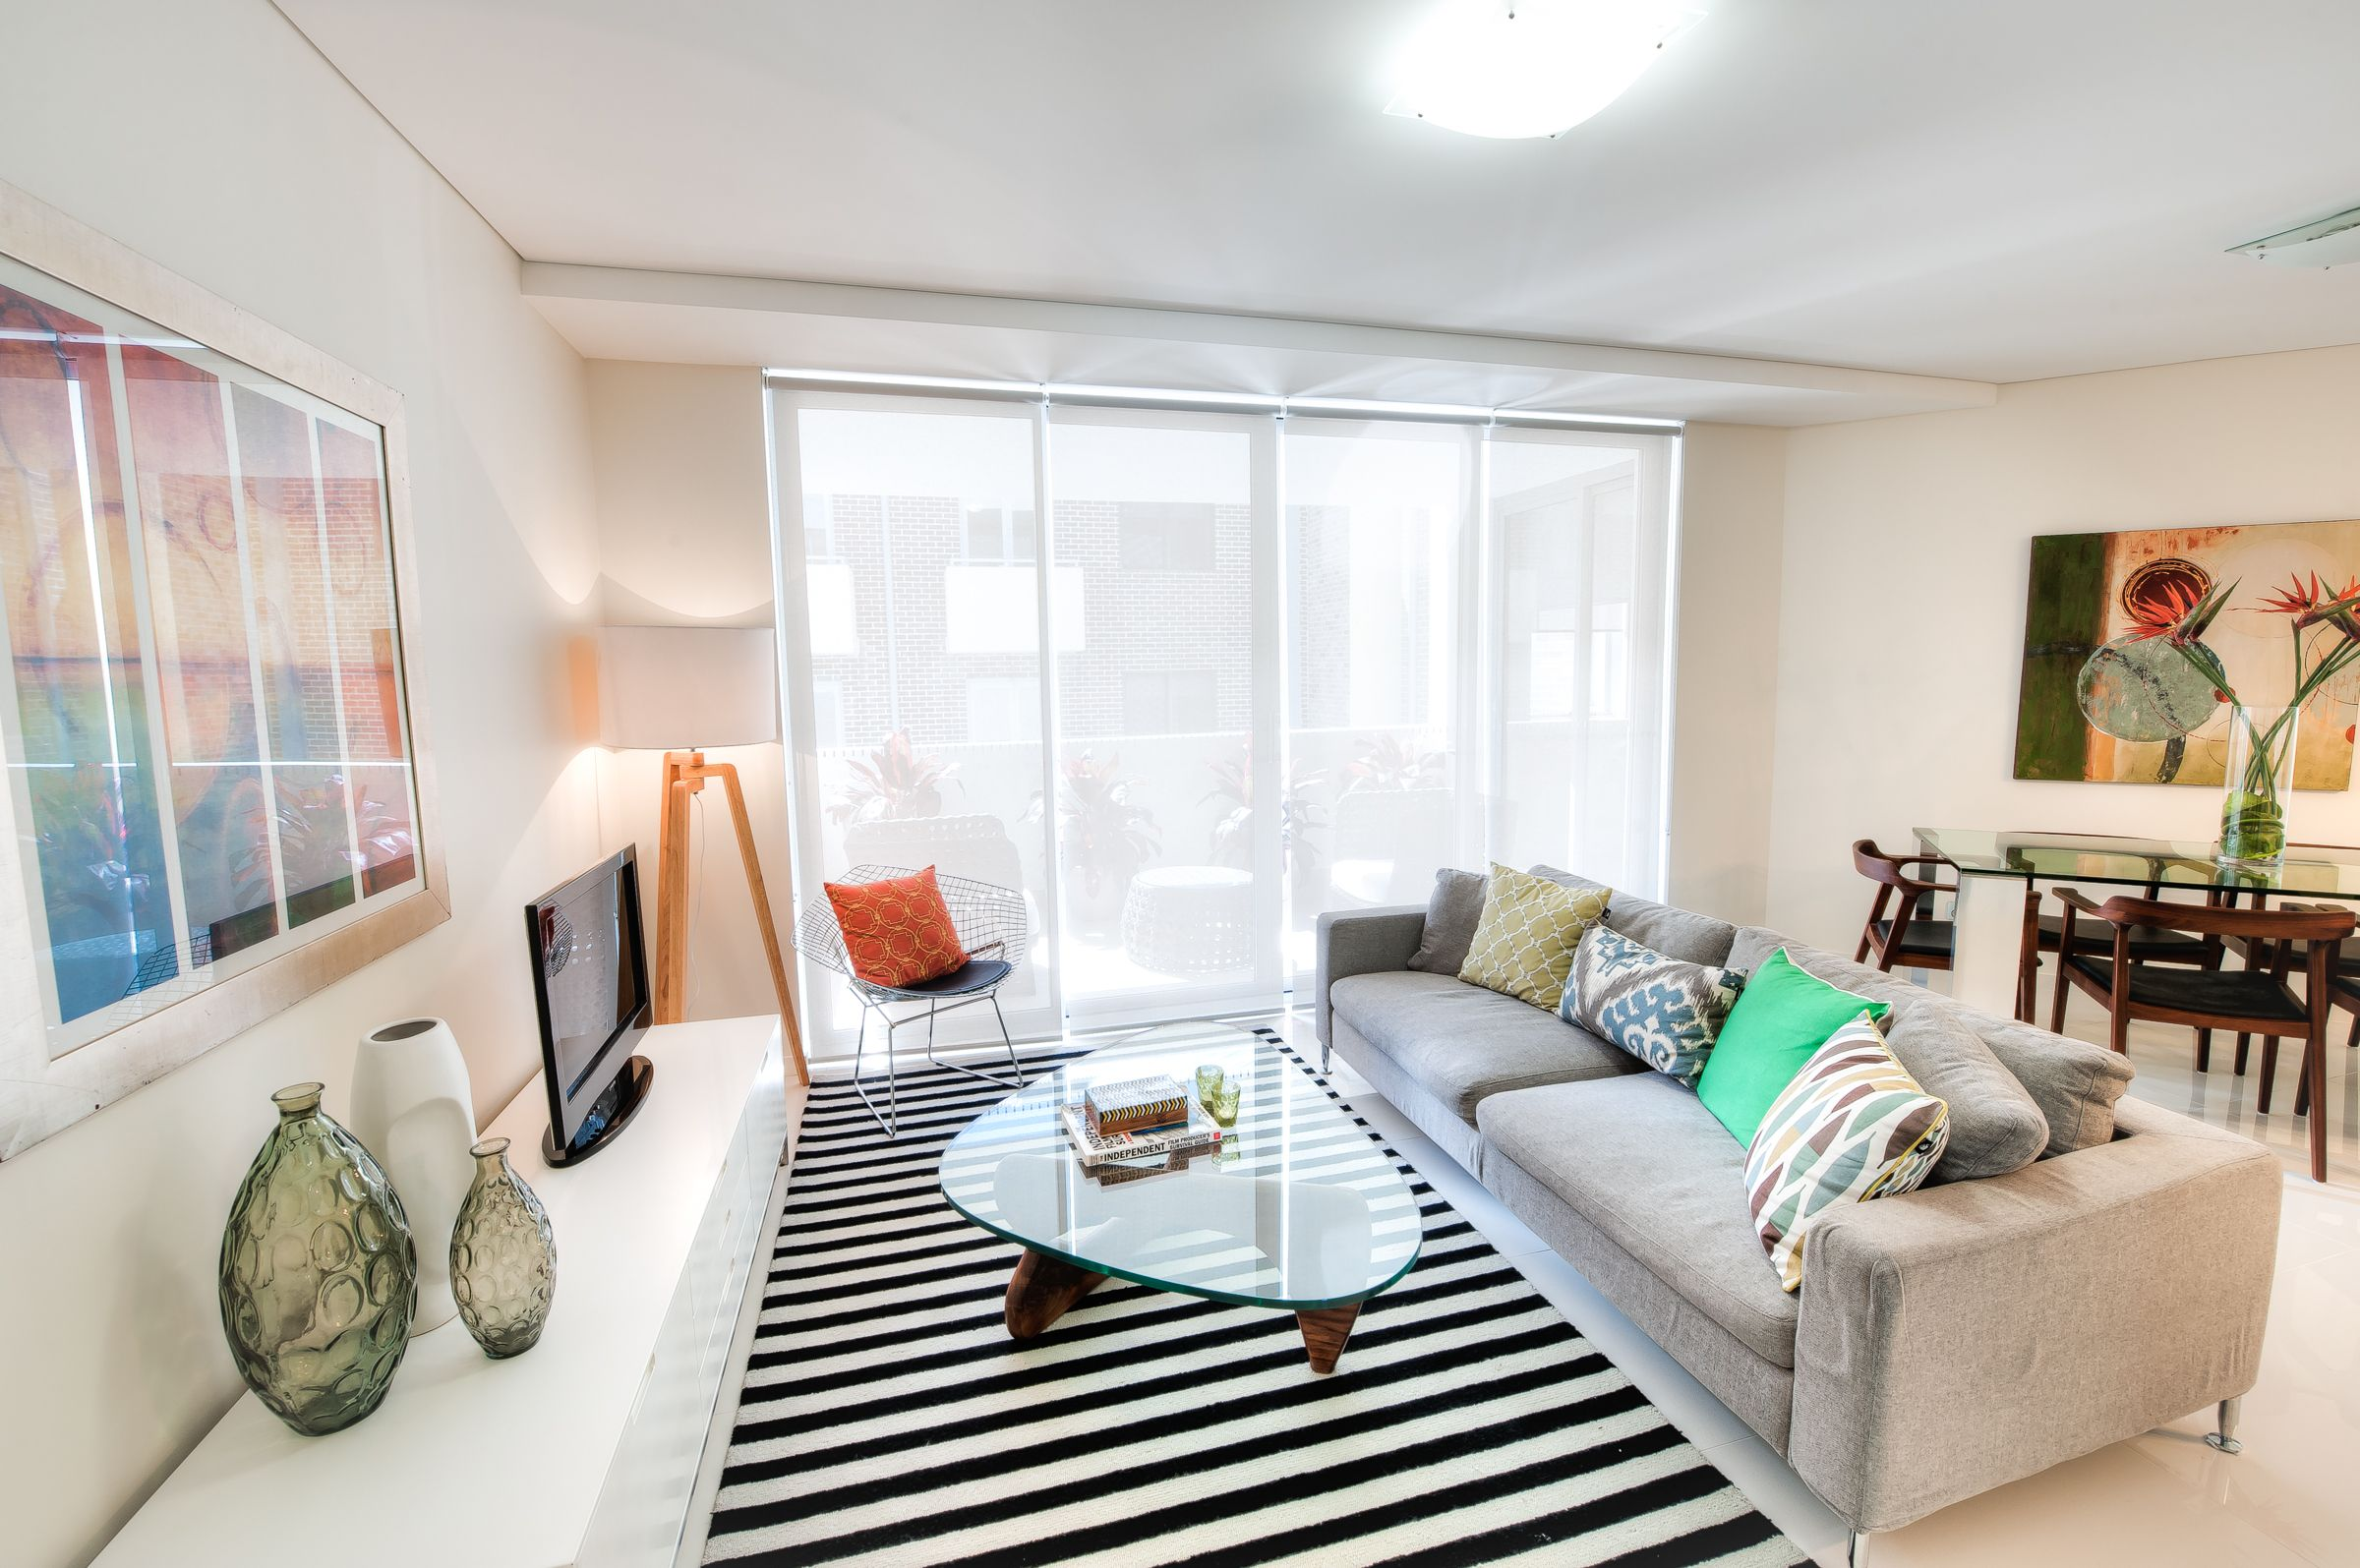 Property Styling By Valiant Hire Gives You The Best Chance Of A Quick Sale  For Top Dollar. Creating A Bond Between The Buyer And Your Property Is The  Best ...